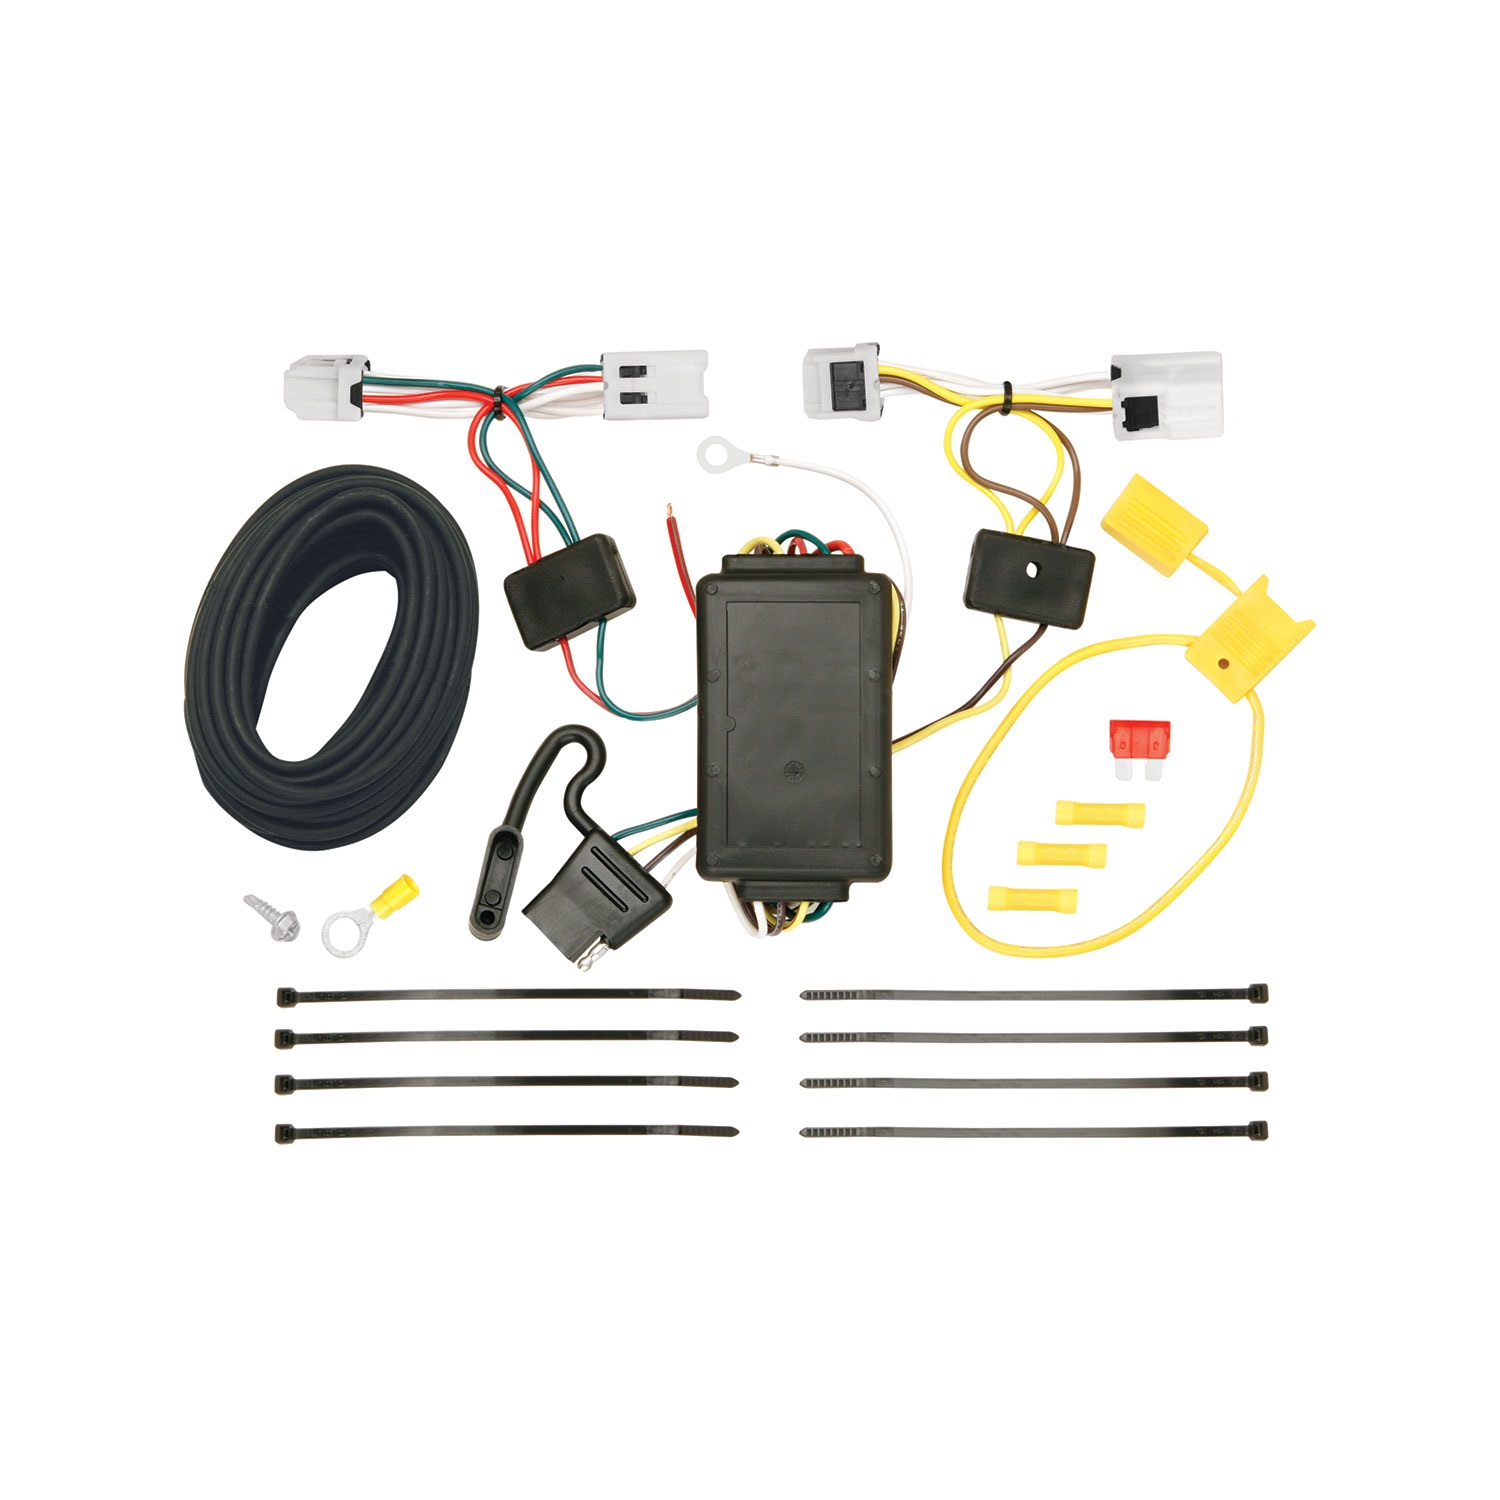 Tow Ready 118470 Wiring T-One Connector; Upgraded Circuit Protected Converter; 3 Wire System; Amp Rating 2.1; 7.5;